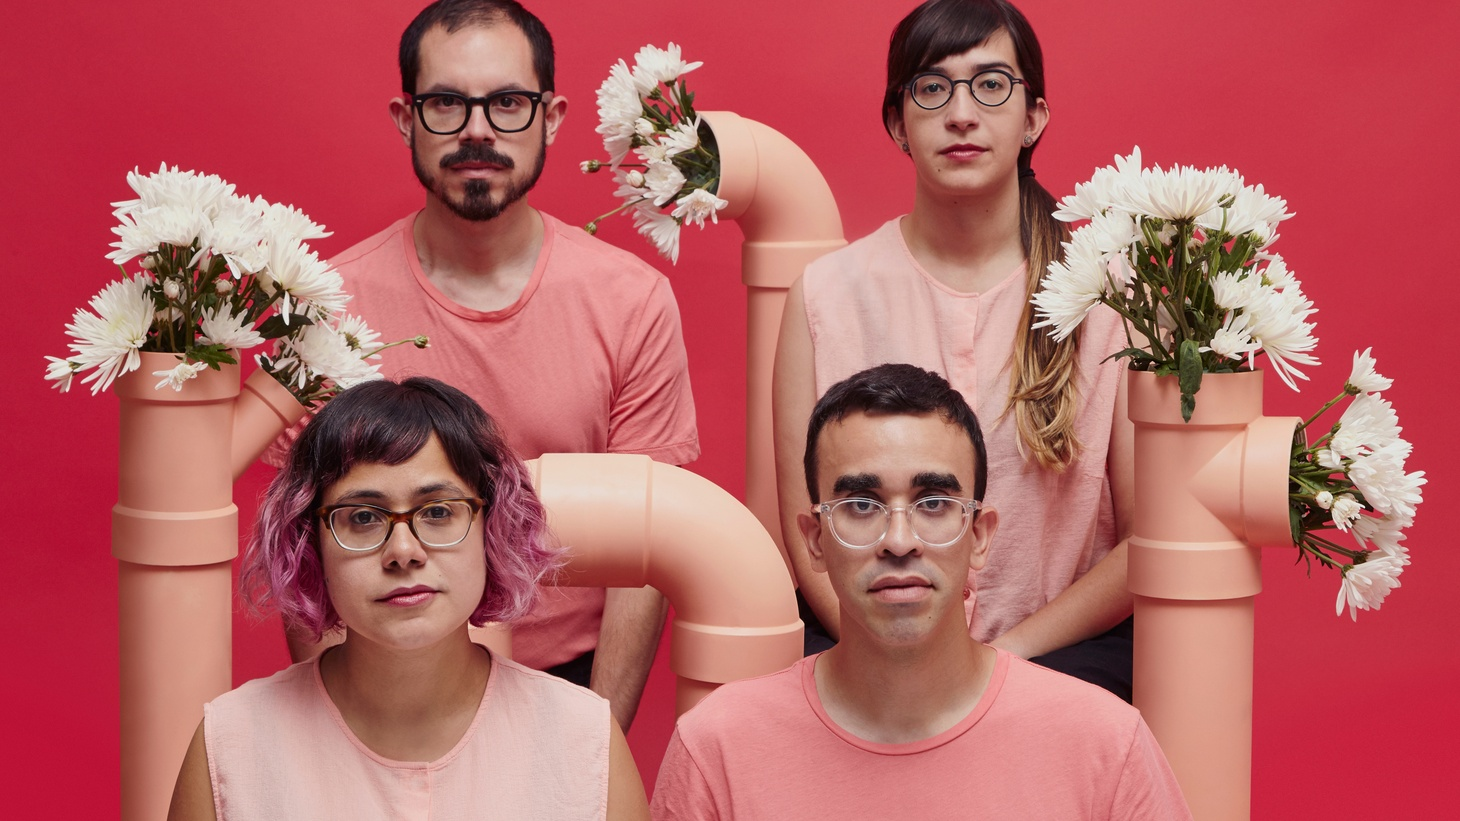 KCRW DJ José Galván first wrote about Puerto Rican via-Brooklyn outfit Balún on his Pan Caliente blog a couple of years ago (and again while recapping outstanding bands at SXSW this year).